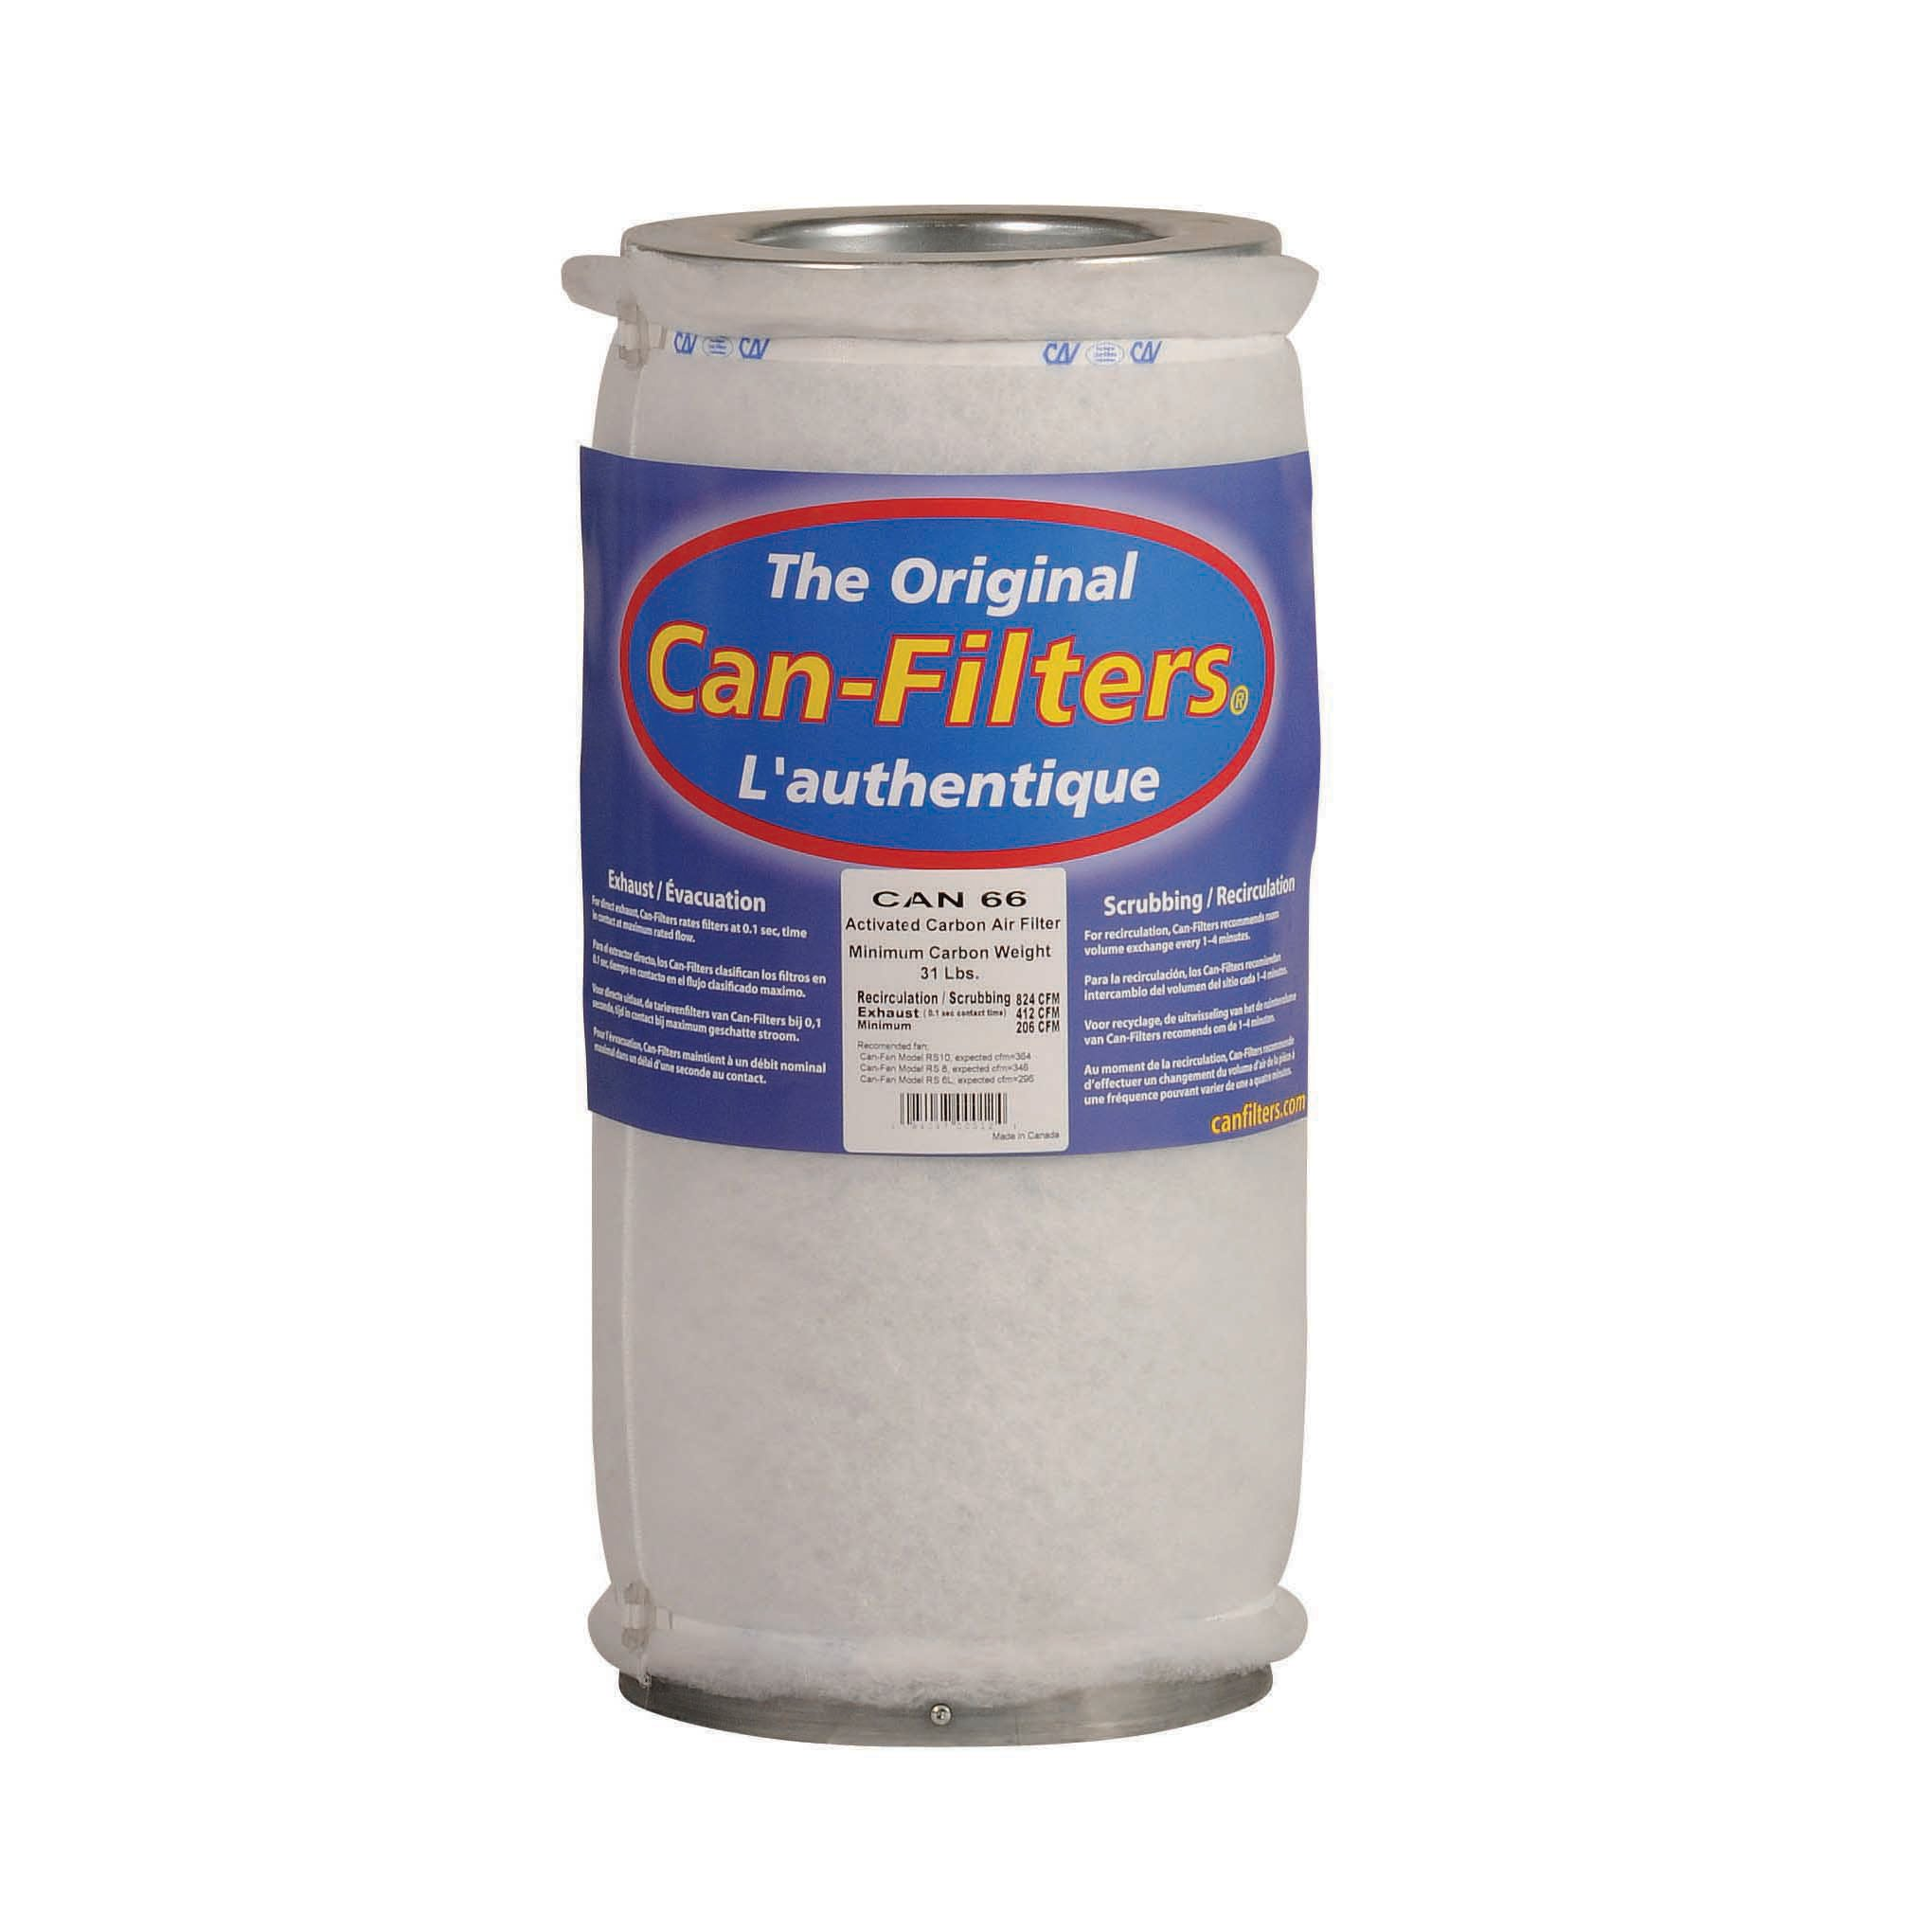 Can 66 Carbon Filter with Prefilter, Flange Sold Separately by Can Filter